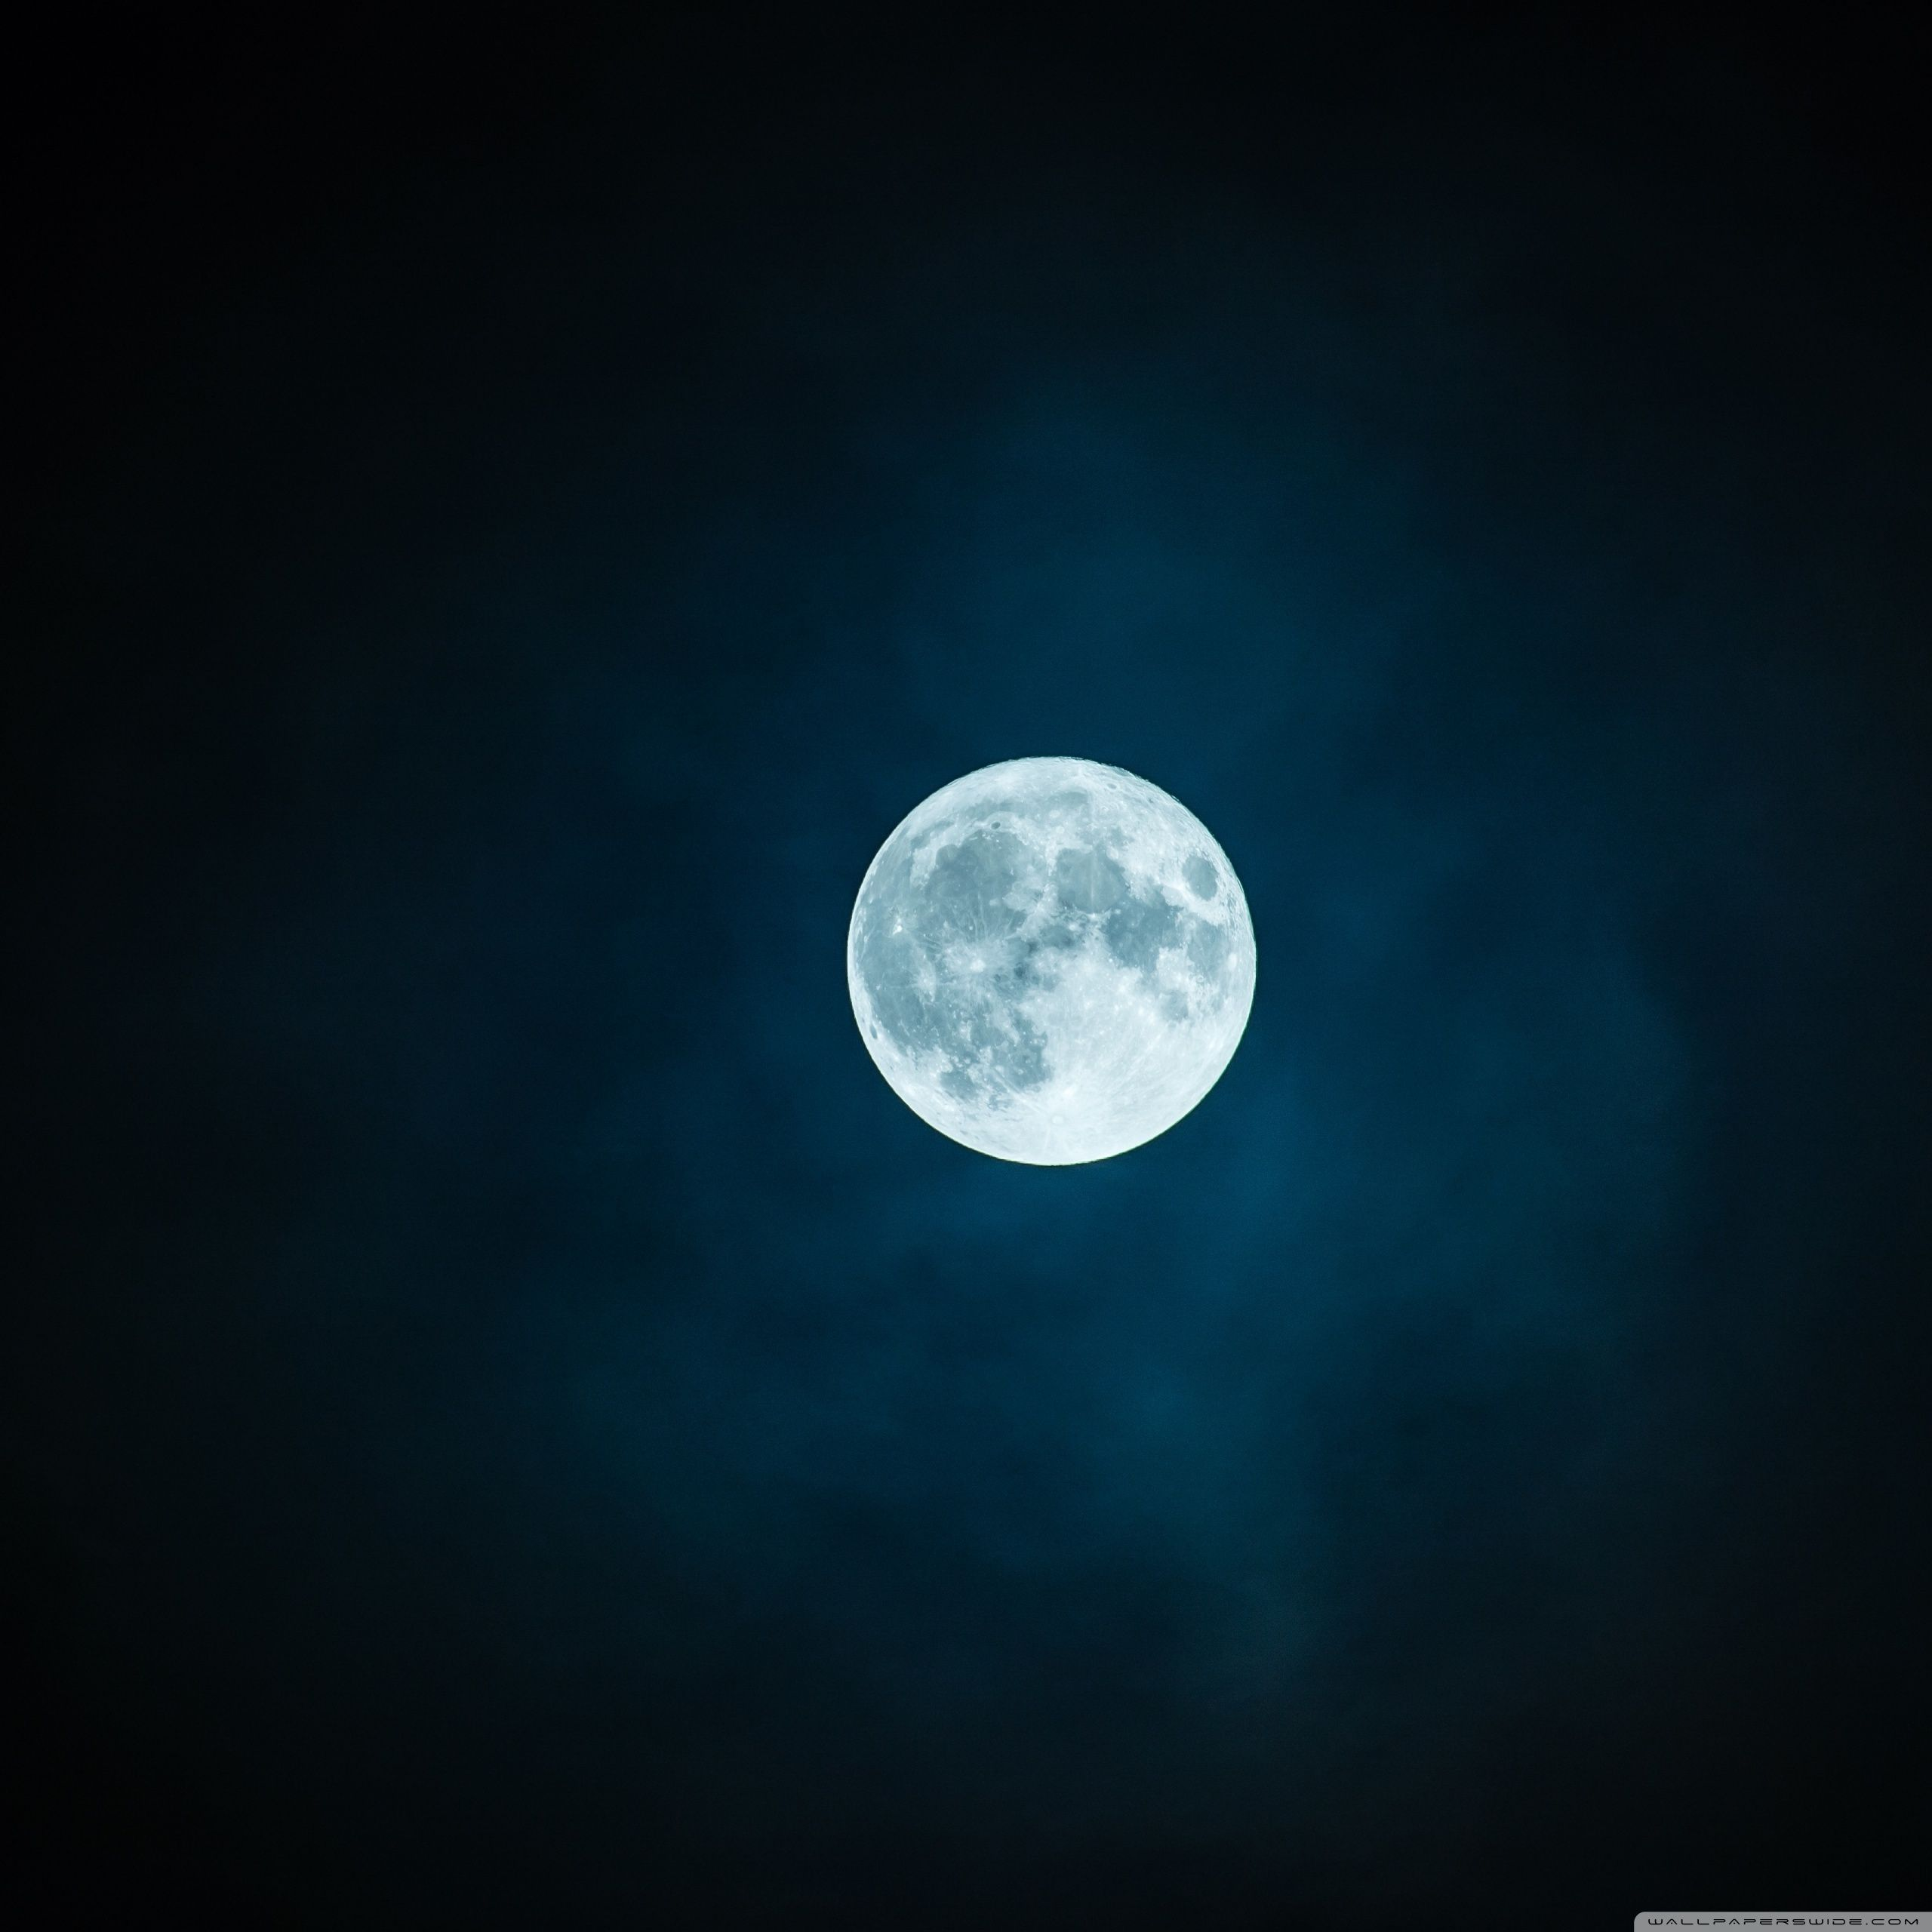 Full Moon Wallpapers Top Free Full Moon Backgrounds Wallpaperaccess